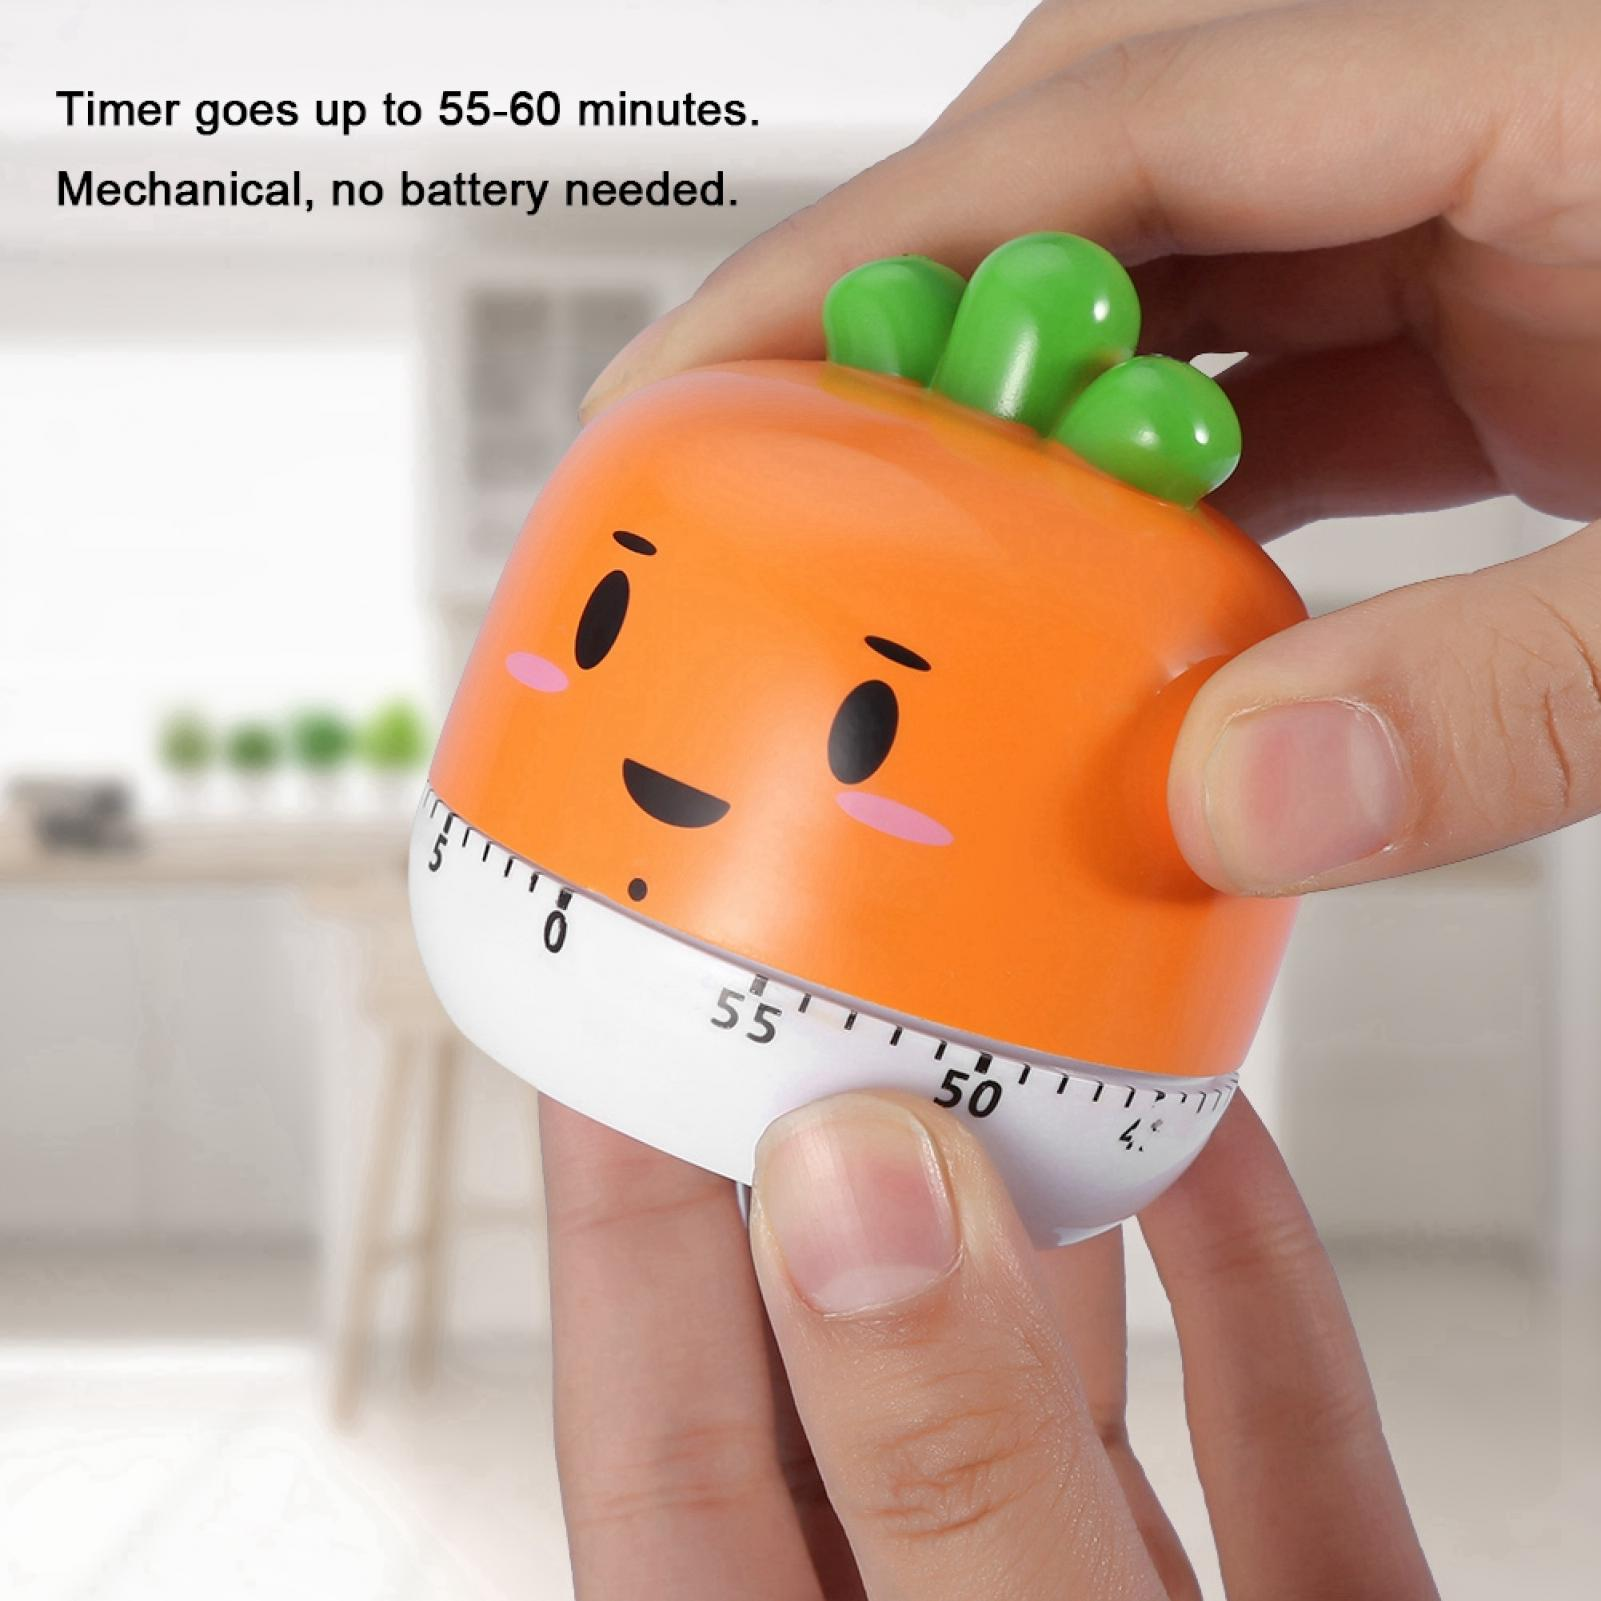 Cute-Cartoon-Kitchen-Timer-Mechanical-Timers-Counters-for-Cooking-Timing-Tool thumbnail 47